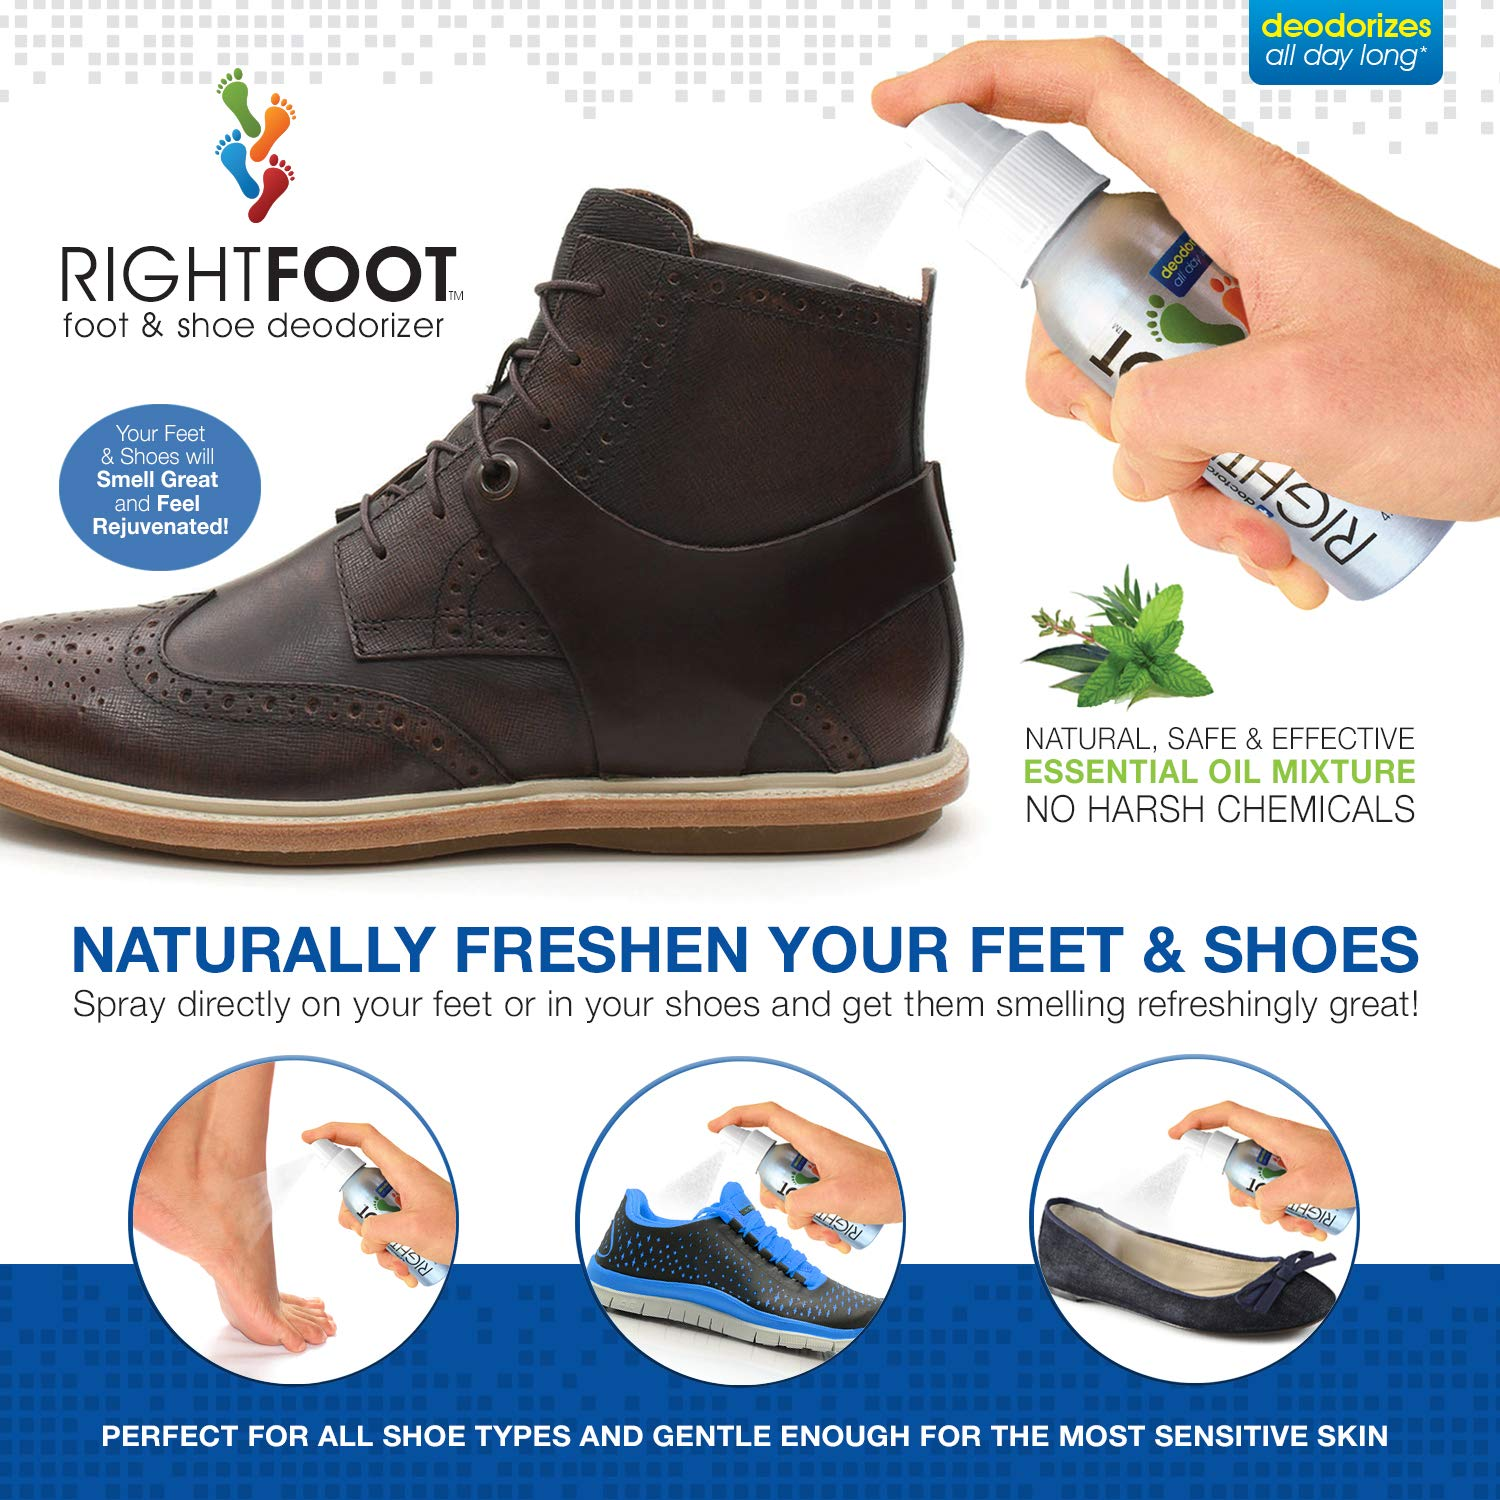 761cbb2616e15 Amazon.com: #1 Most Effective Foot and Shoe Deodorizer Spray - All Natural  and 100% Safe for All Shoes & Feet - Fresh Peppermint & Tea Tree Deodorant,  ...